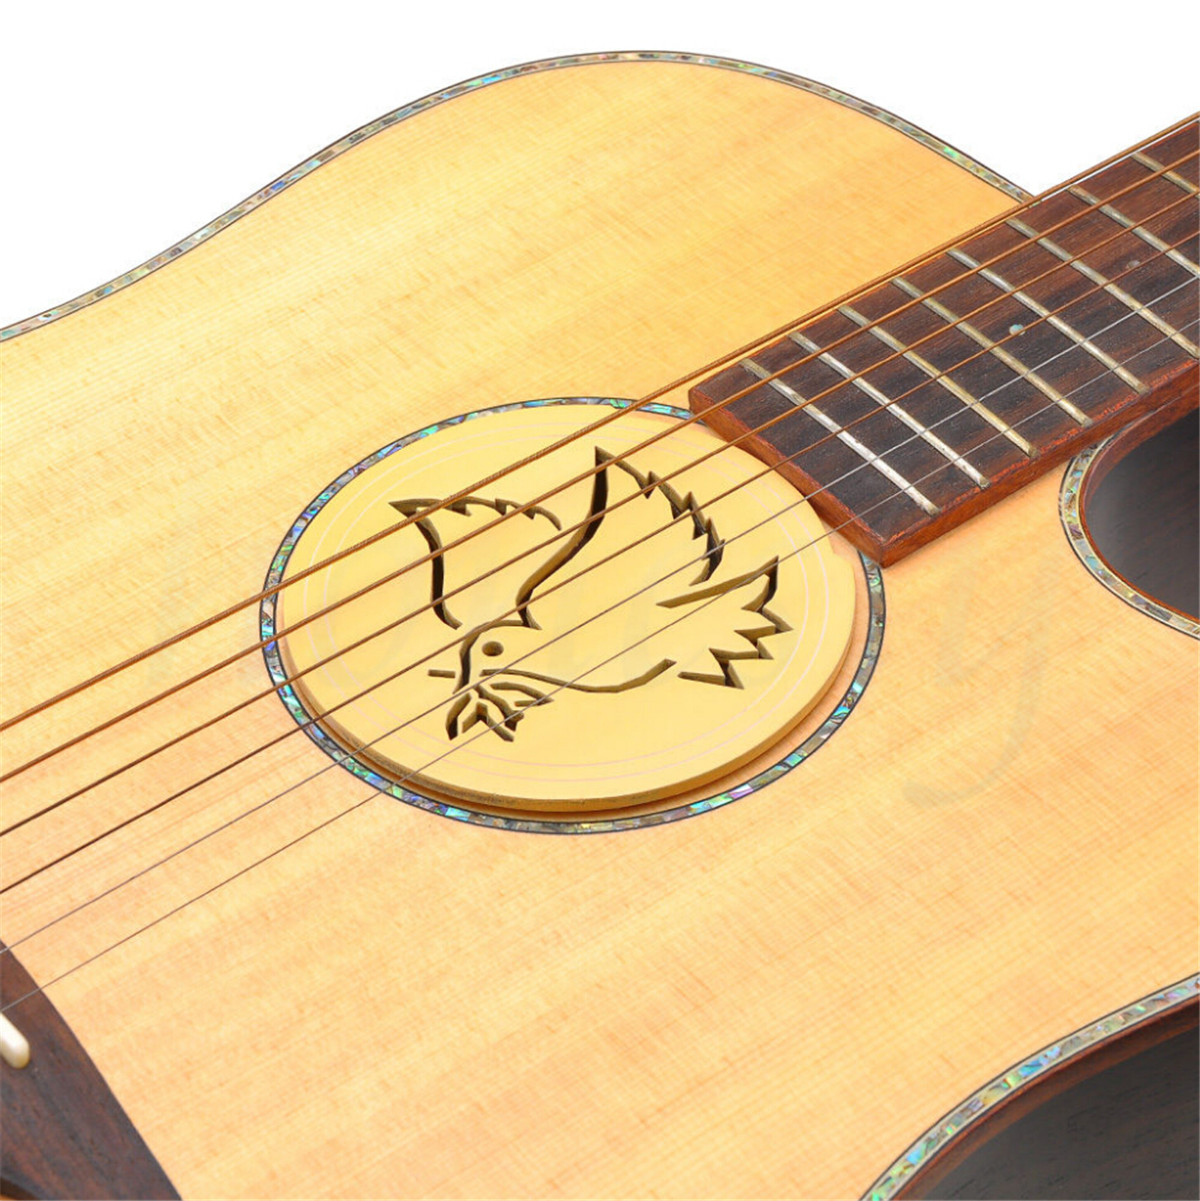 soundhole cover for acoustic guitar feedback buster sound buffer hole protector ebay. Black Bedroom Furniture Sets. Home Design Ideas